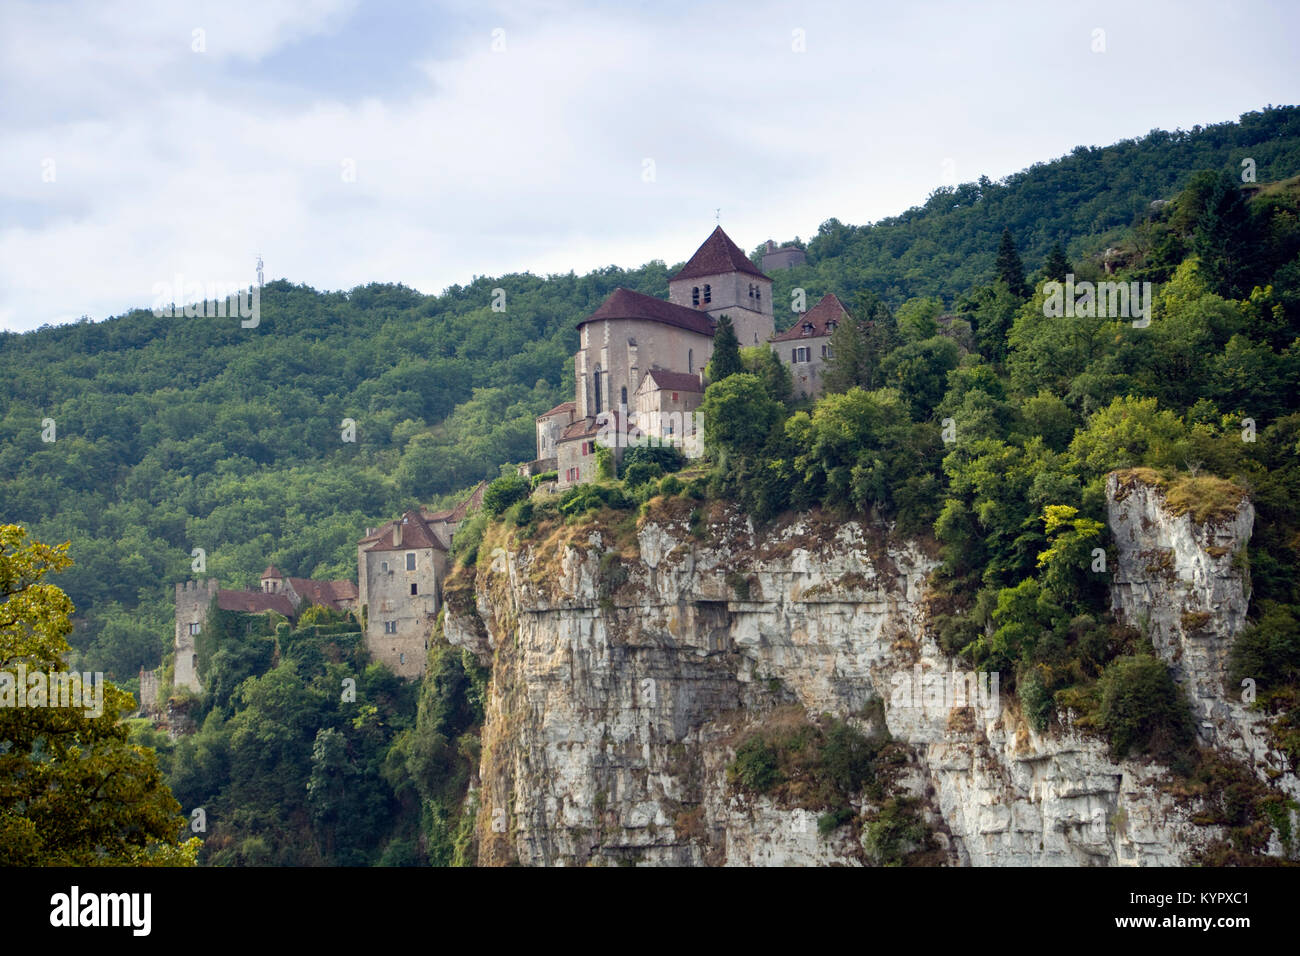 The historic clifftop village tourist attraction of  St Cirq Lapopie in the Lot Valley, Lot, France - Stock Image